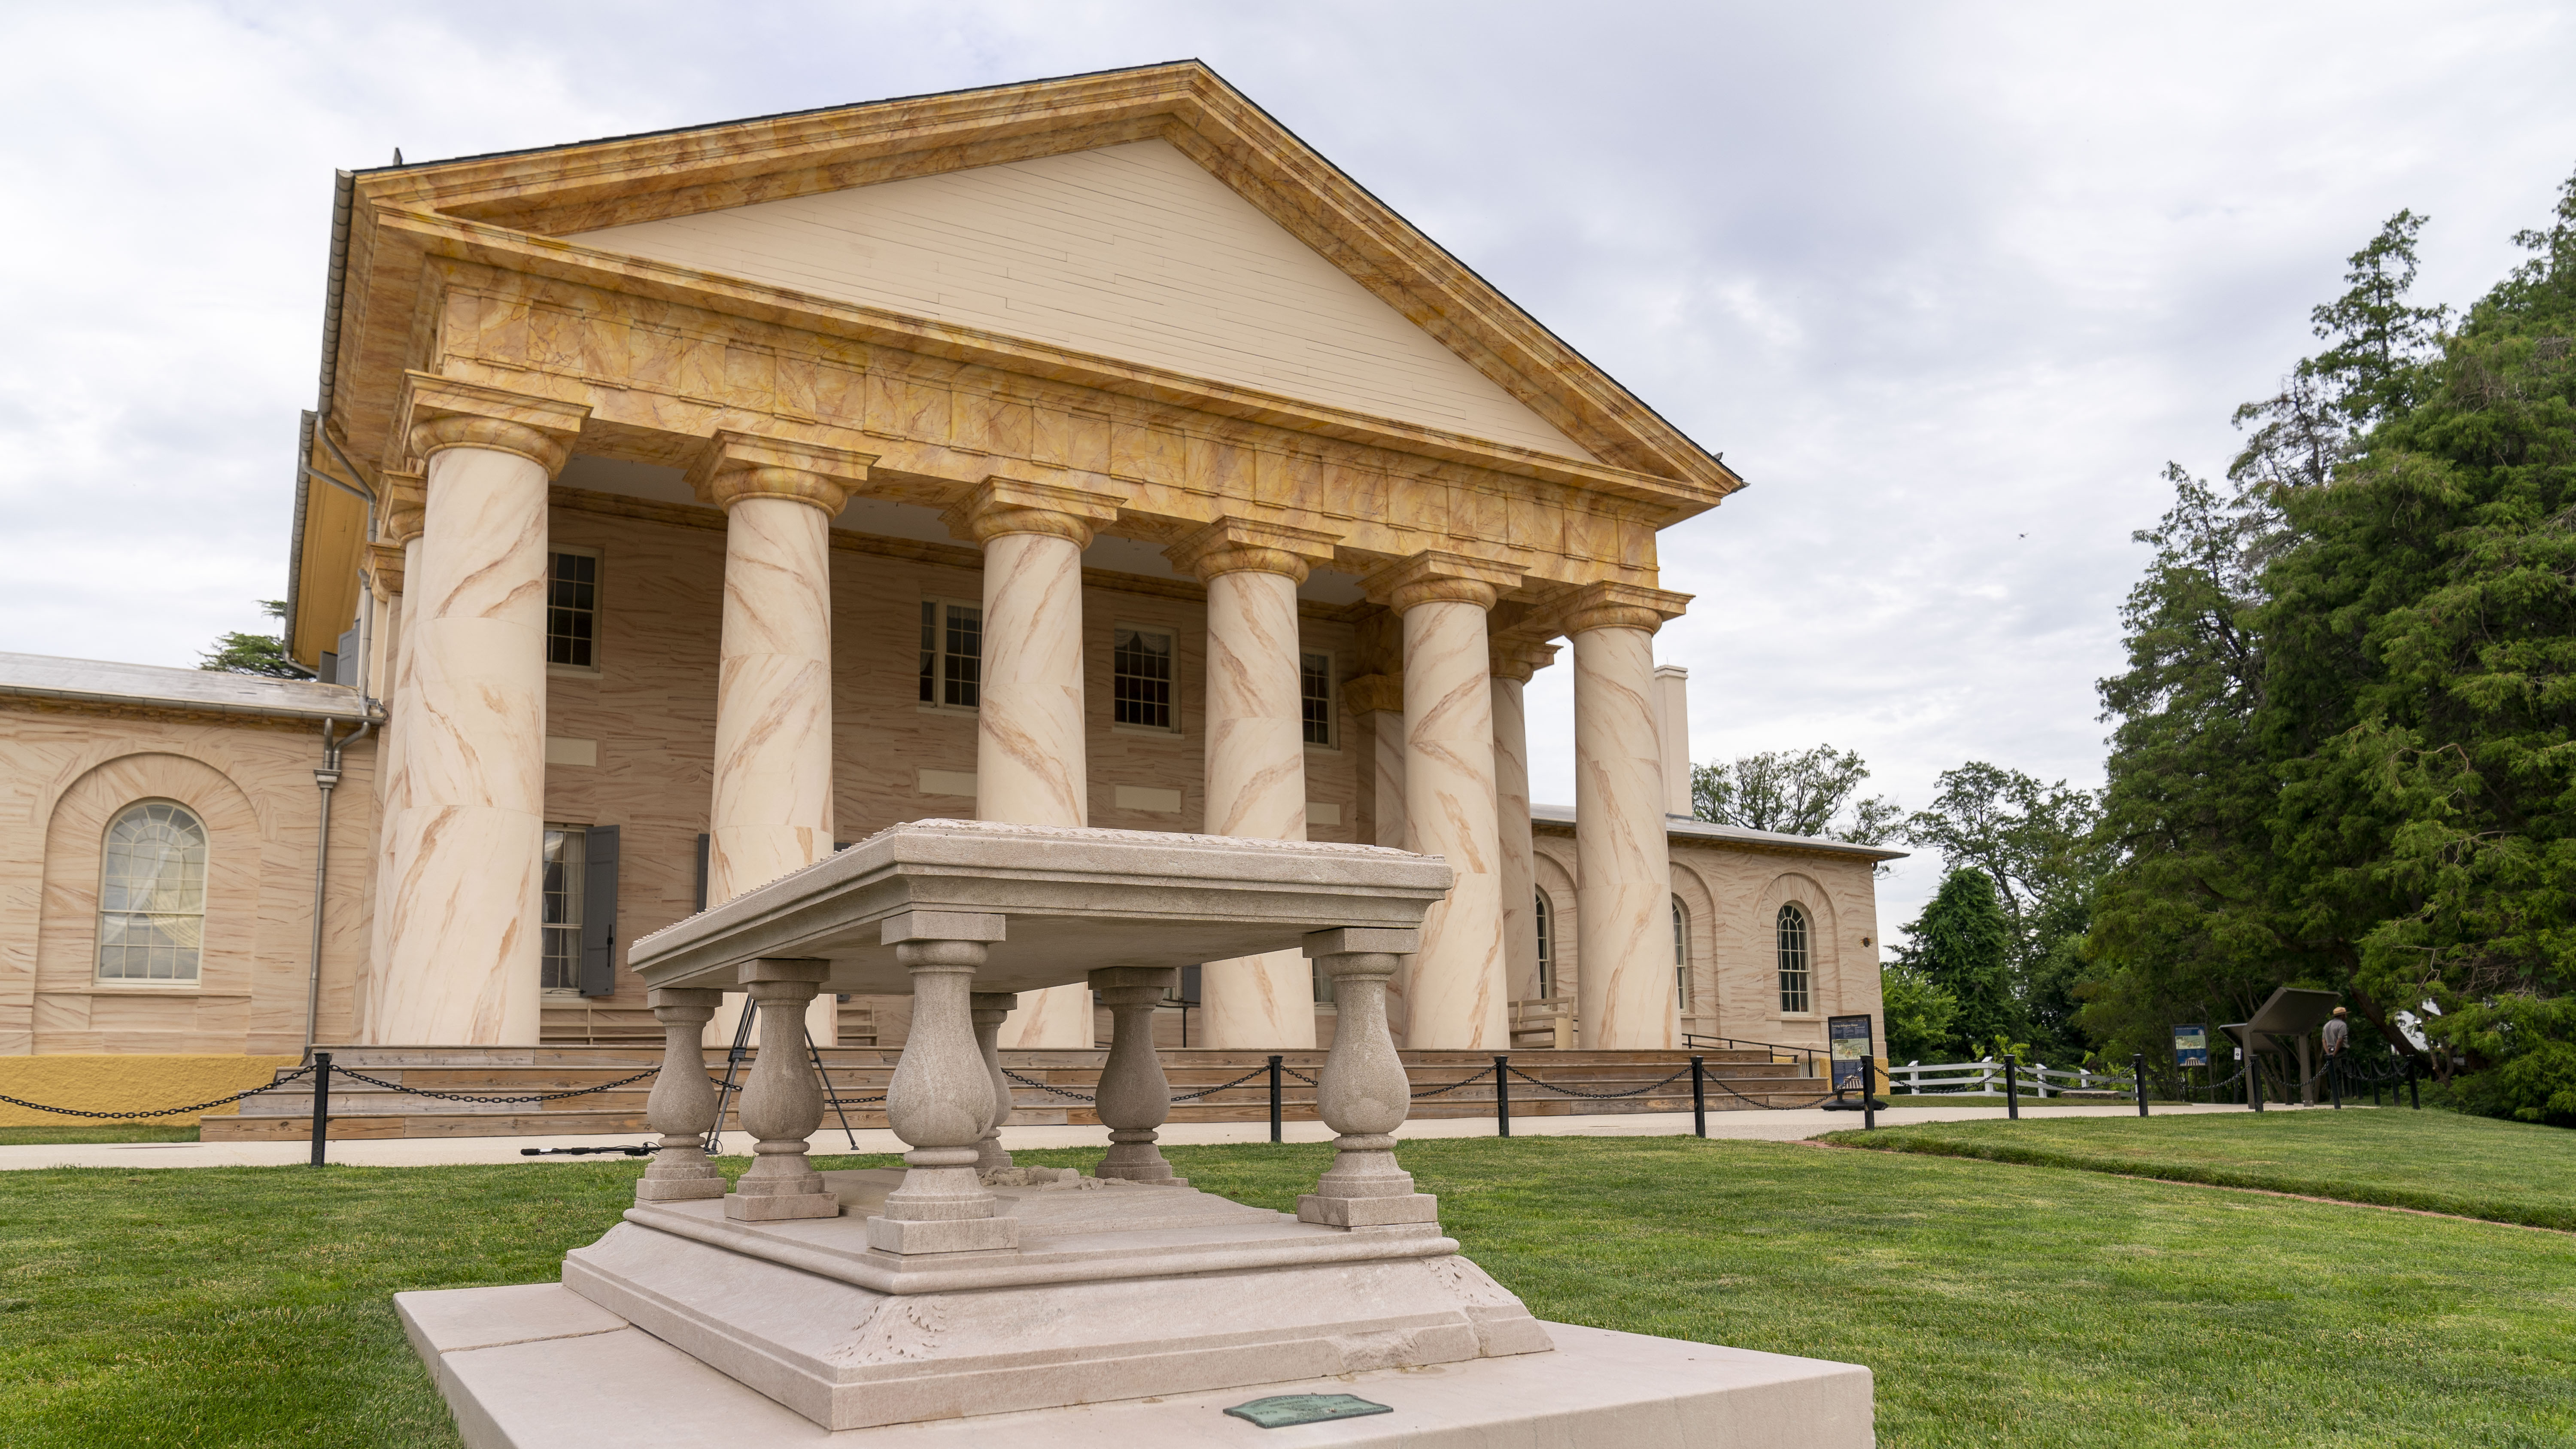 Arlington House, The Robert E. Lee Memorial, reopened to the public for the first time since 2018 on Tuesday. The Virginia mansion where Robert E. Lee once lived underwent a rehabilitation that includes an increased emphasis on those who were enslaved there.